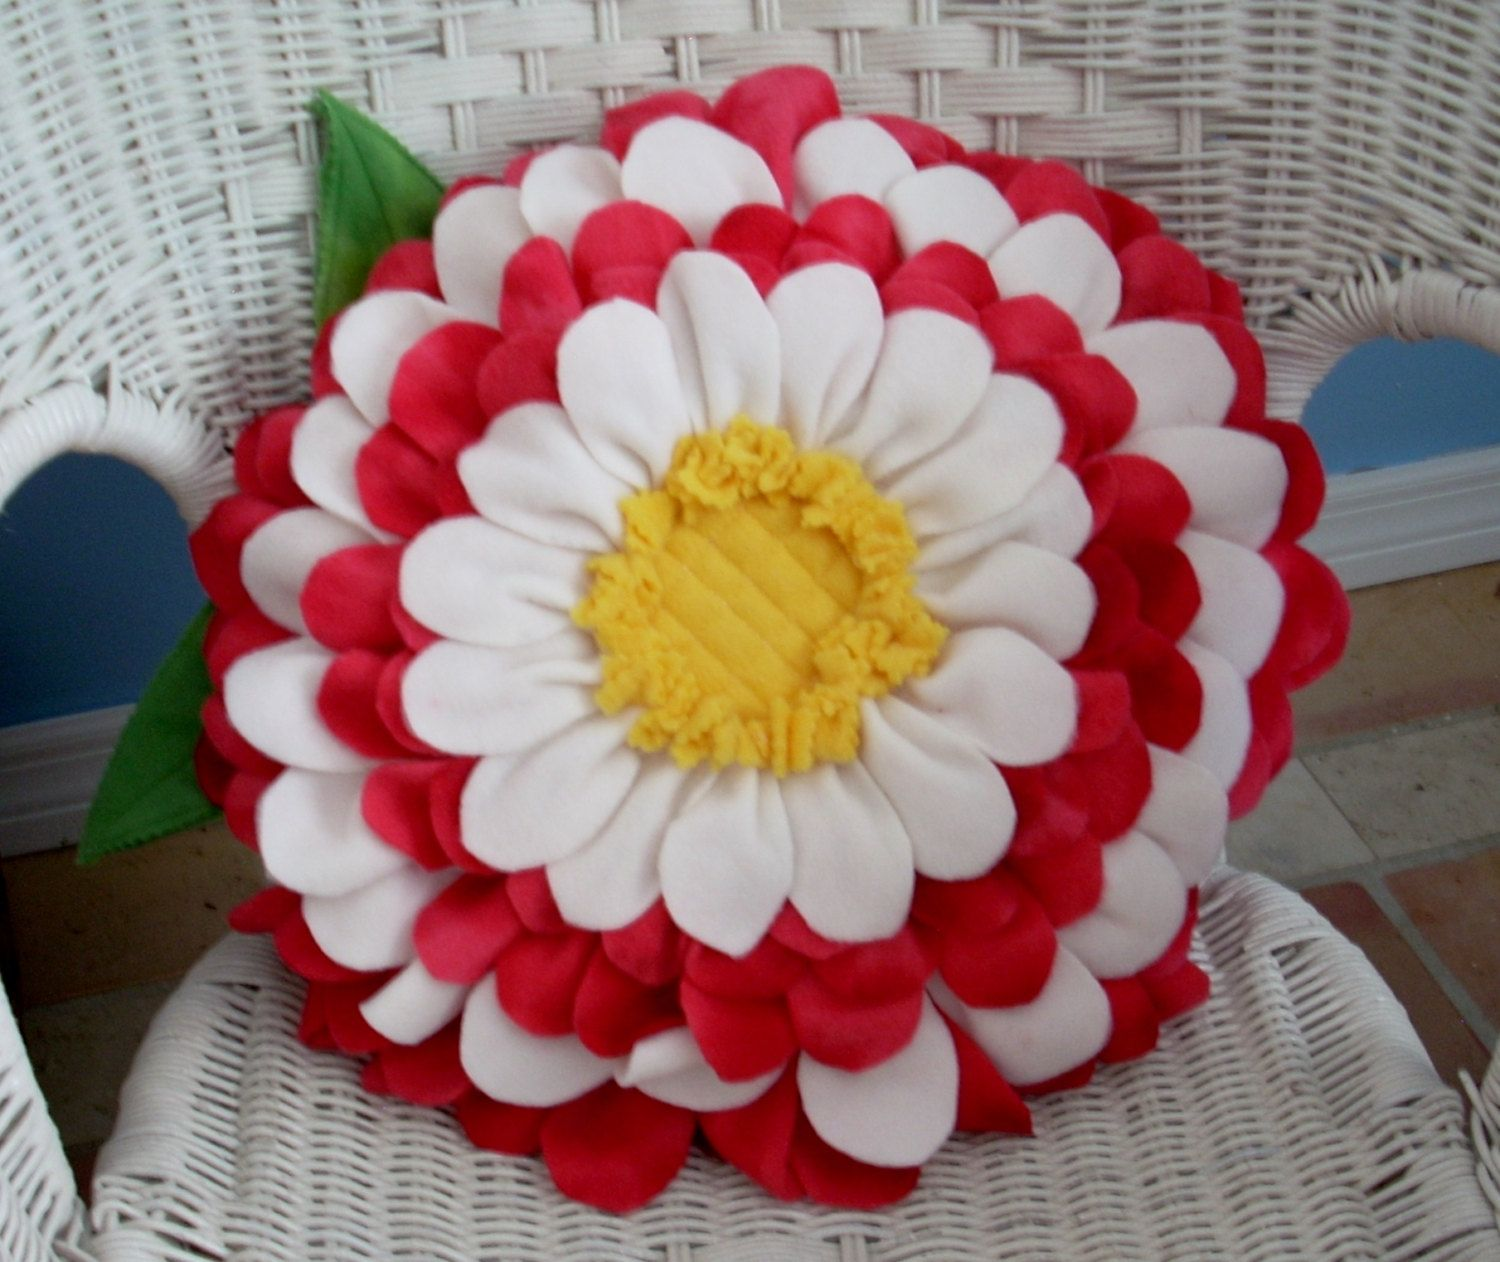 Candy apple red and white fleece flower pillow by Fleeceofnature, $35.00